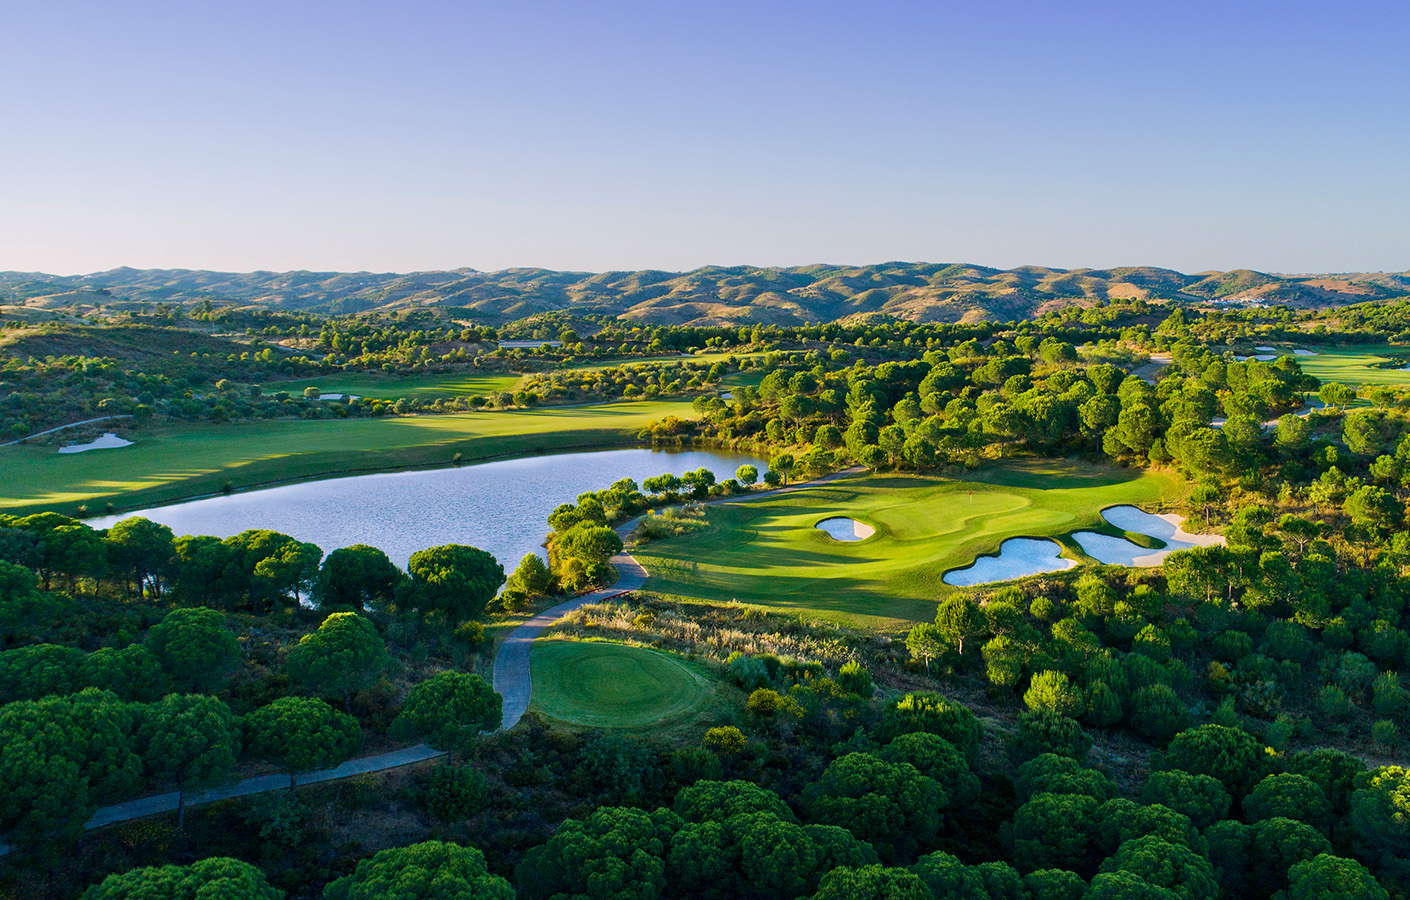 Transfers from Faro Airport to Monte Rei Golf Course